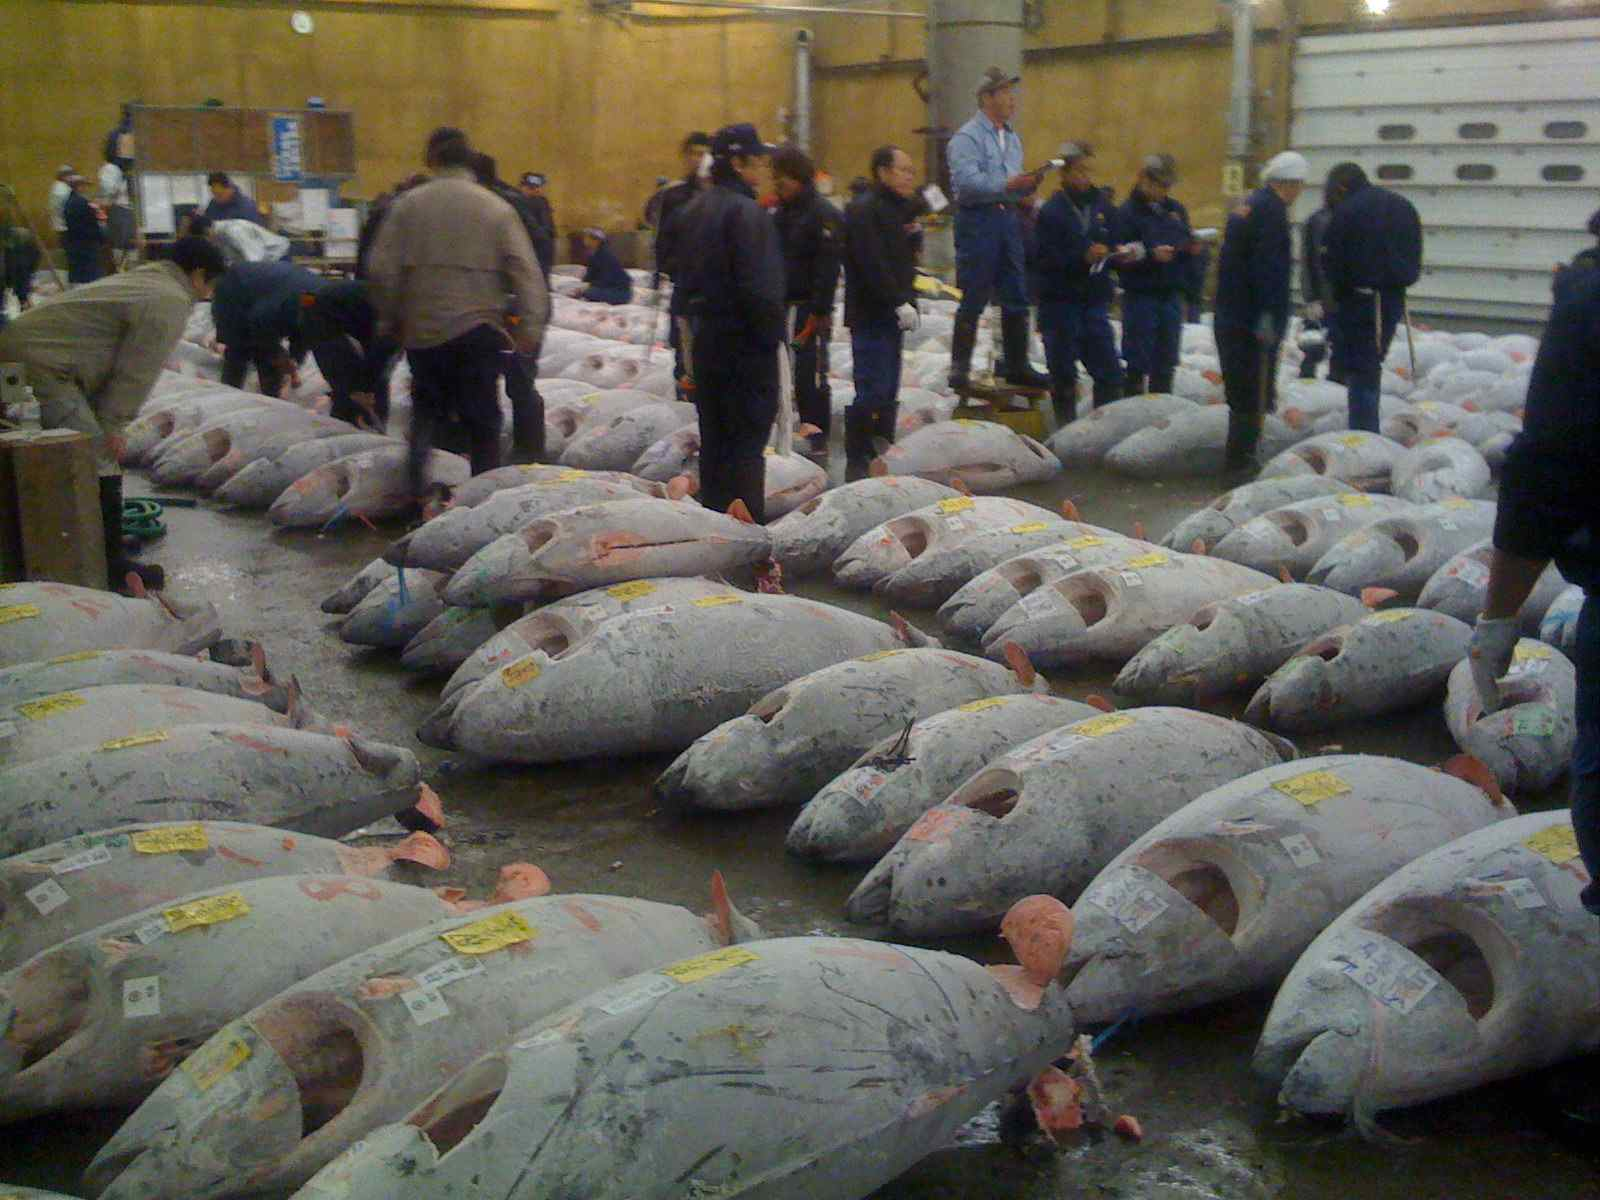 Hundreds of large fish laid out on the floor with men walking around with clipboards.